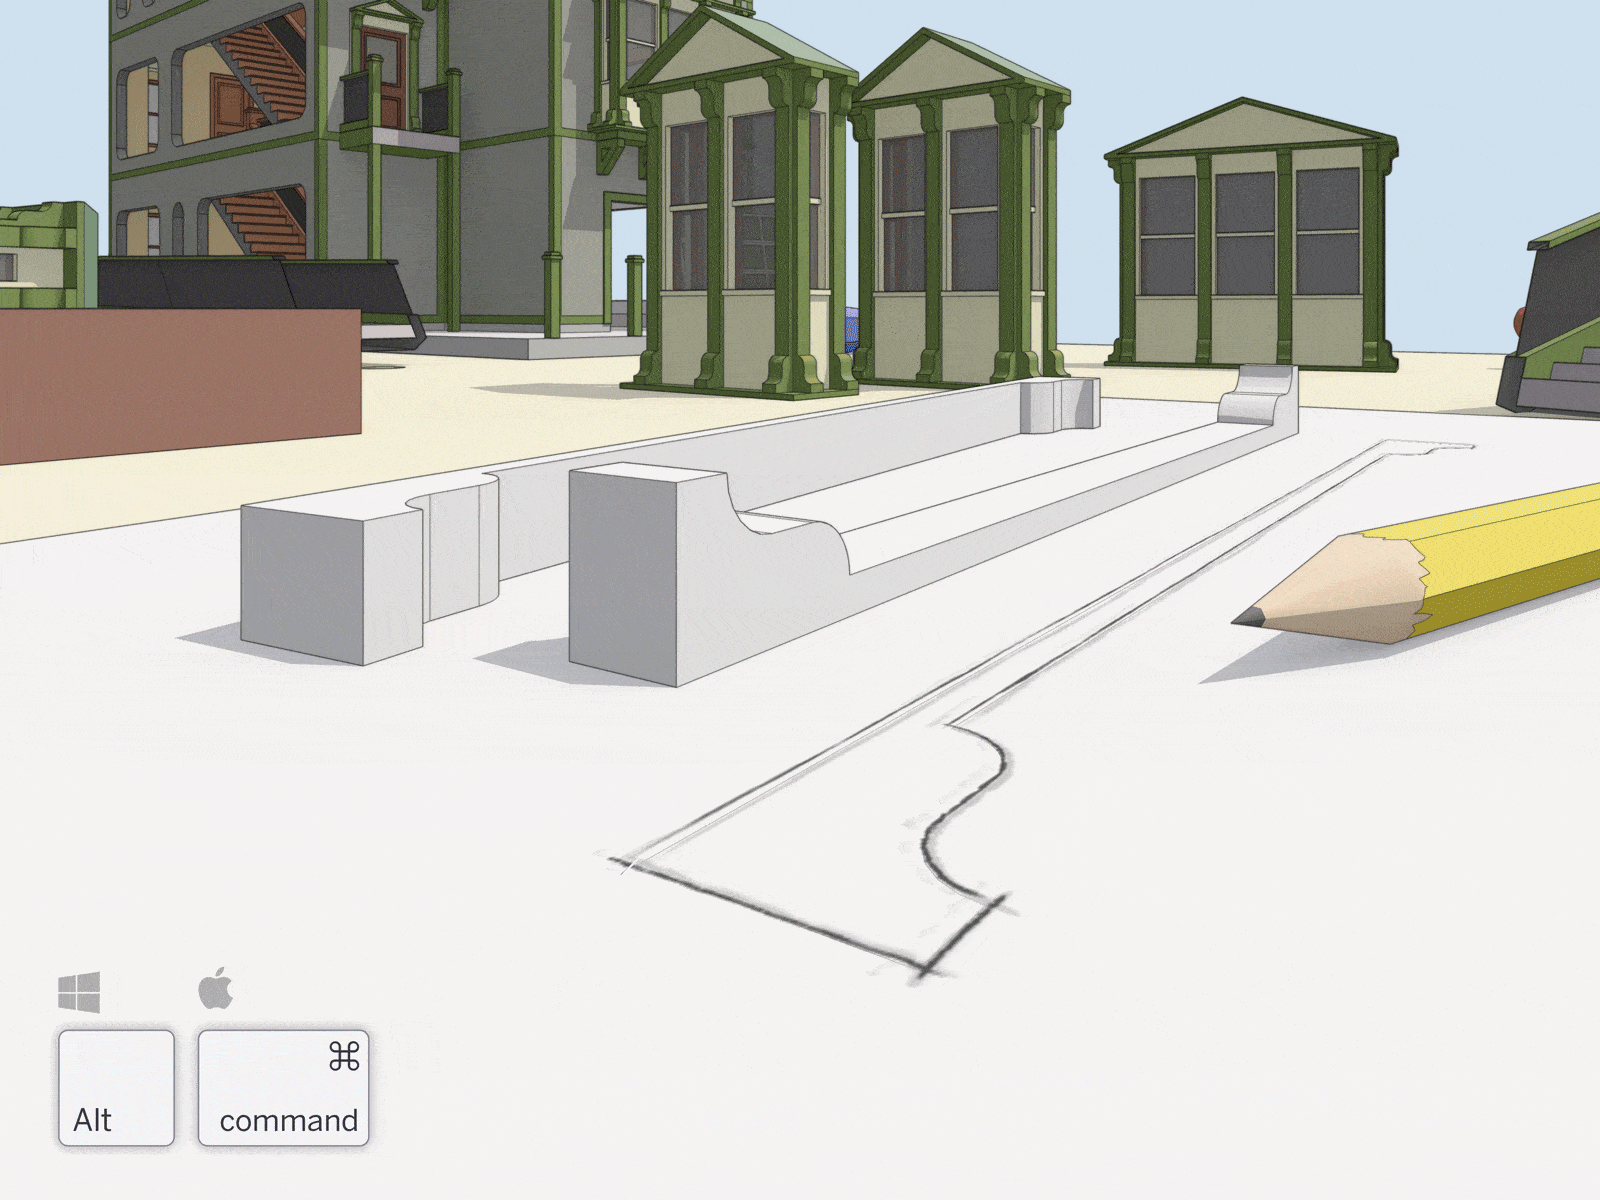 SketchUp's desktop modeler is designed to behave like your hand, so you can draw and extrude geometry quickly.